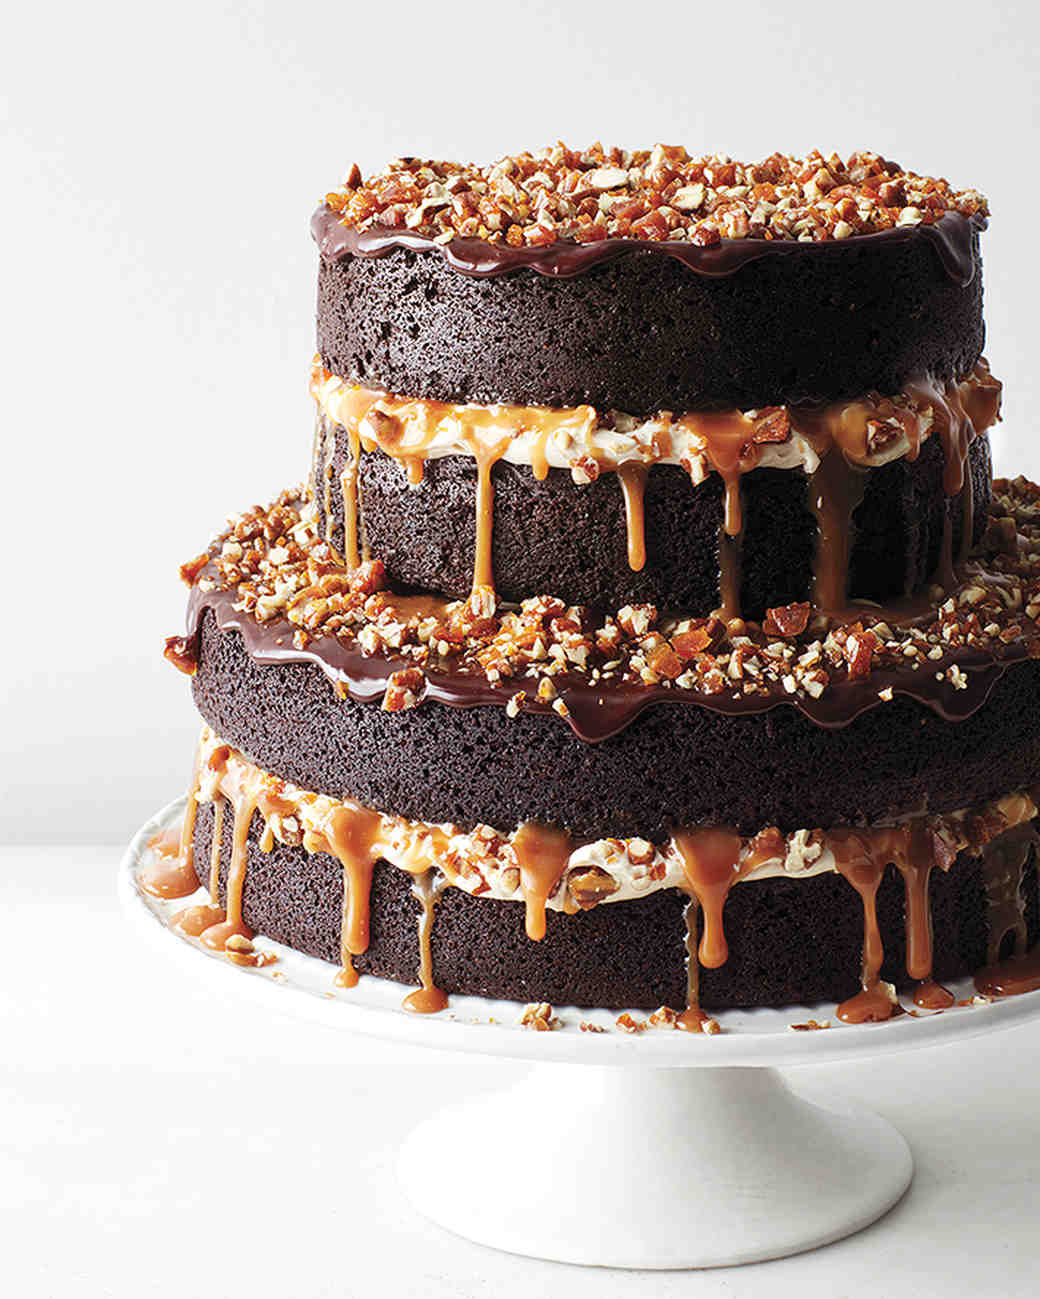 Chocolate Stout Cake With Caramel Buttercream Salted Candied Pecans And Ganache